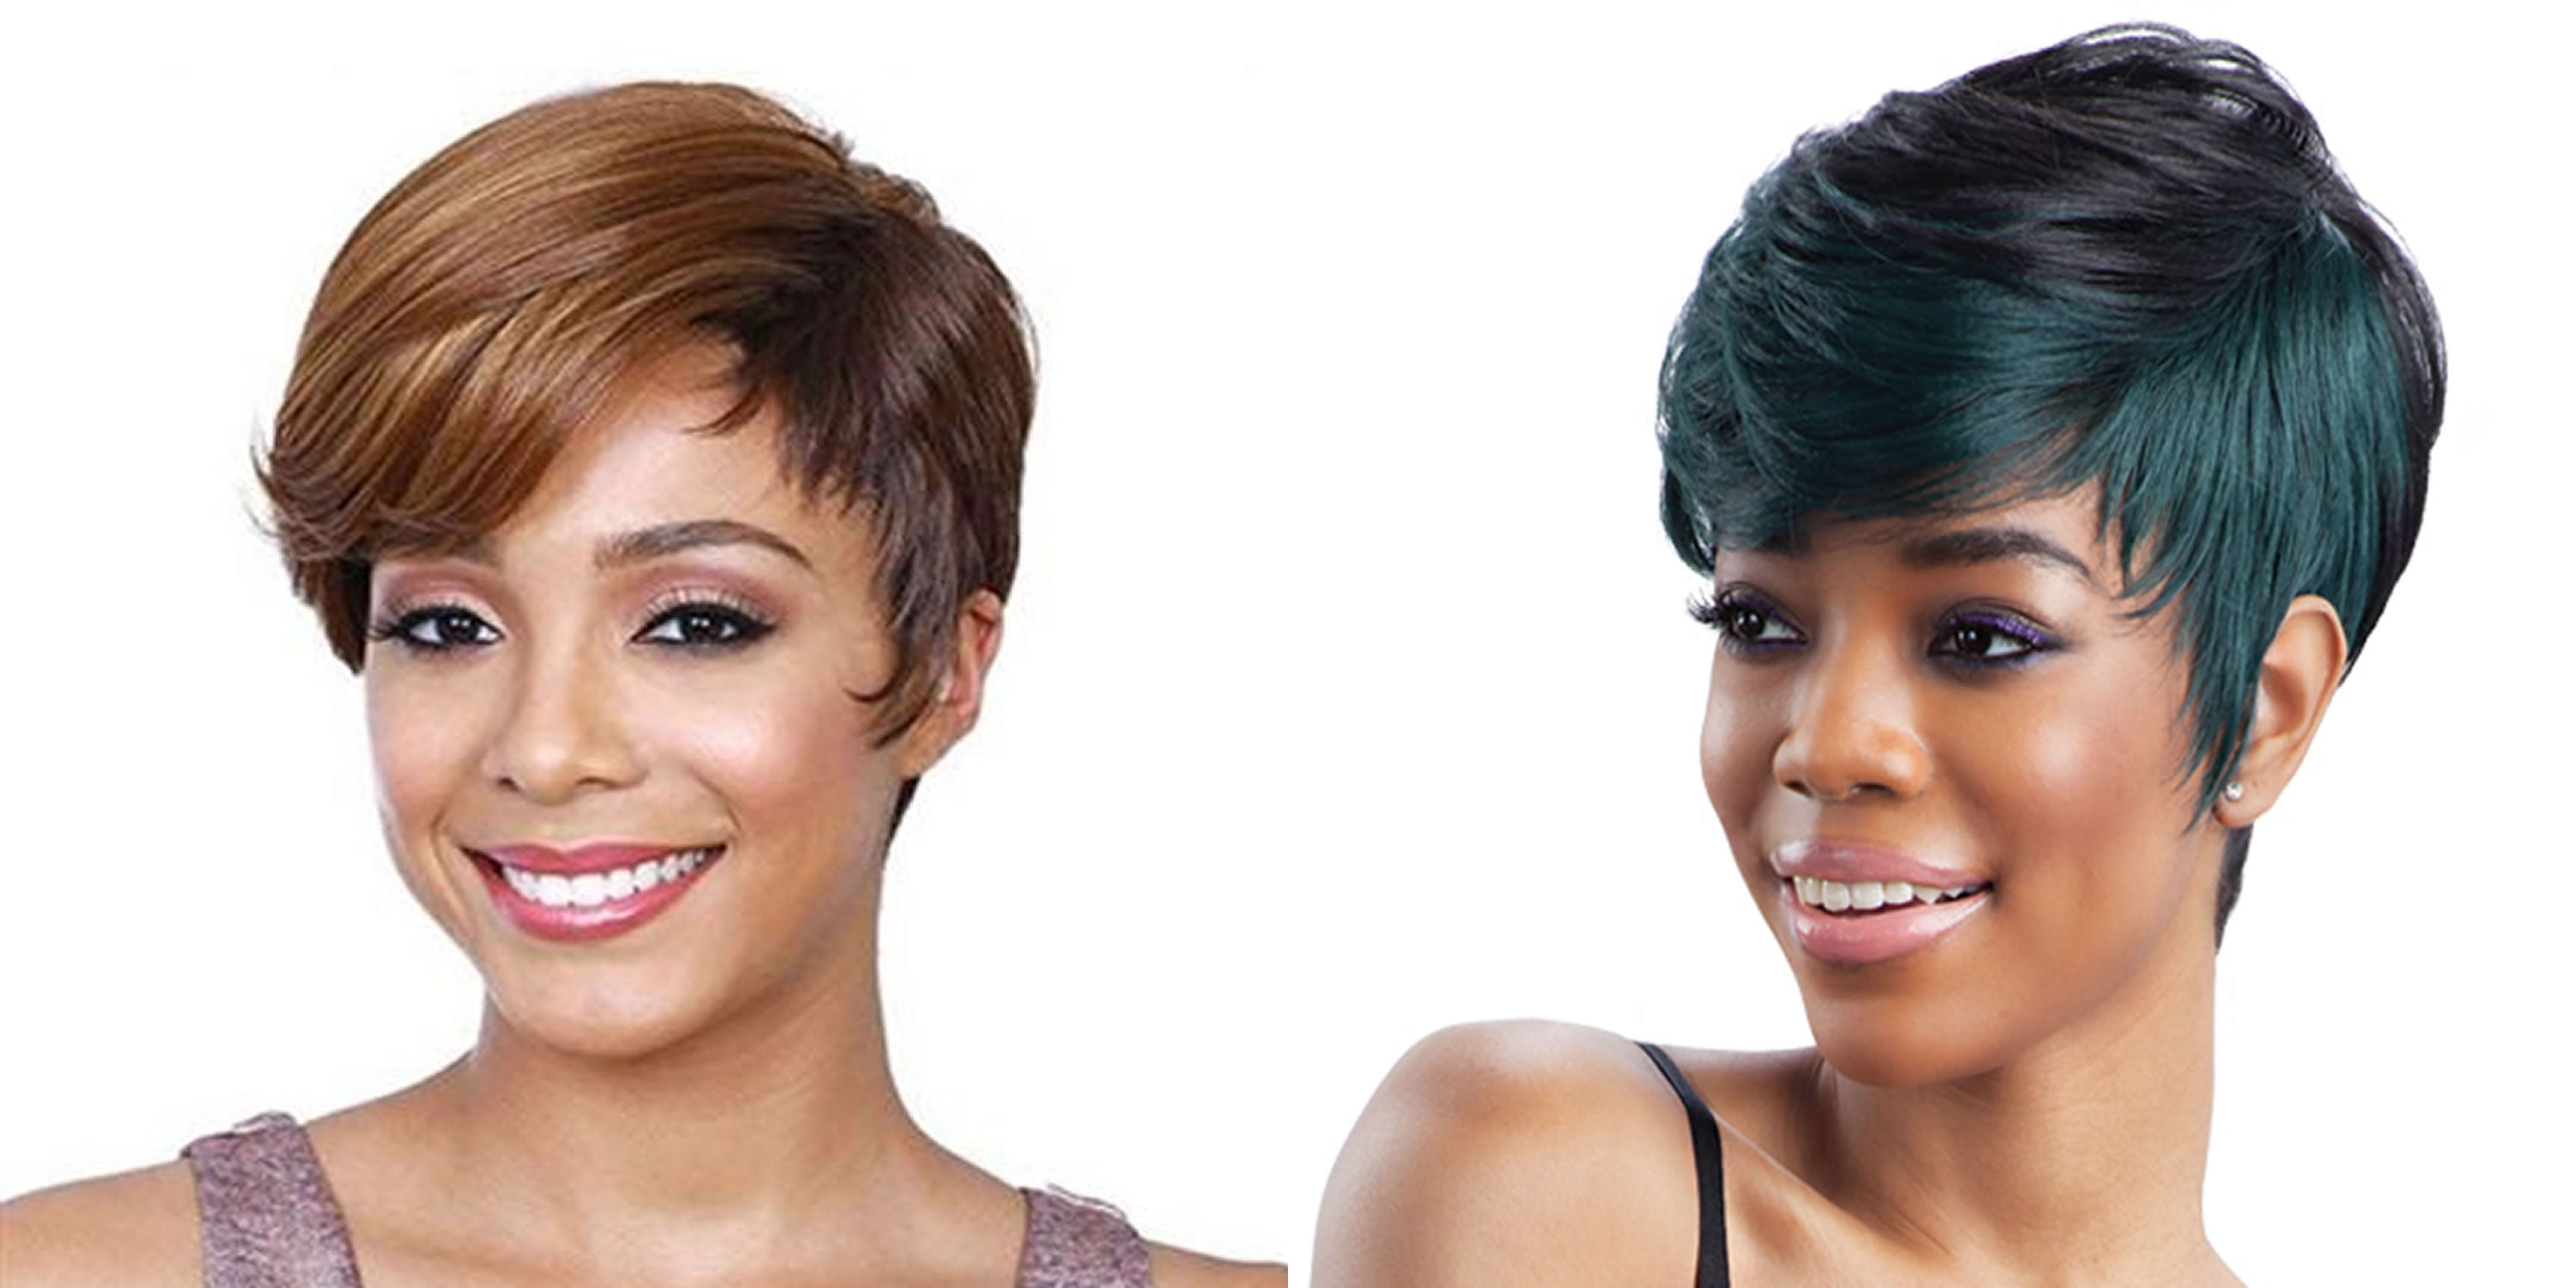 Pixie Hairstyles for Black Women - 60 Cool Short Haircuts for 2017 ...